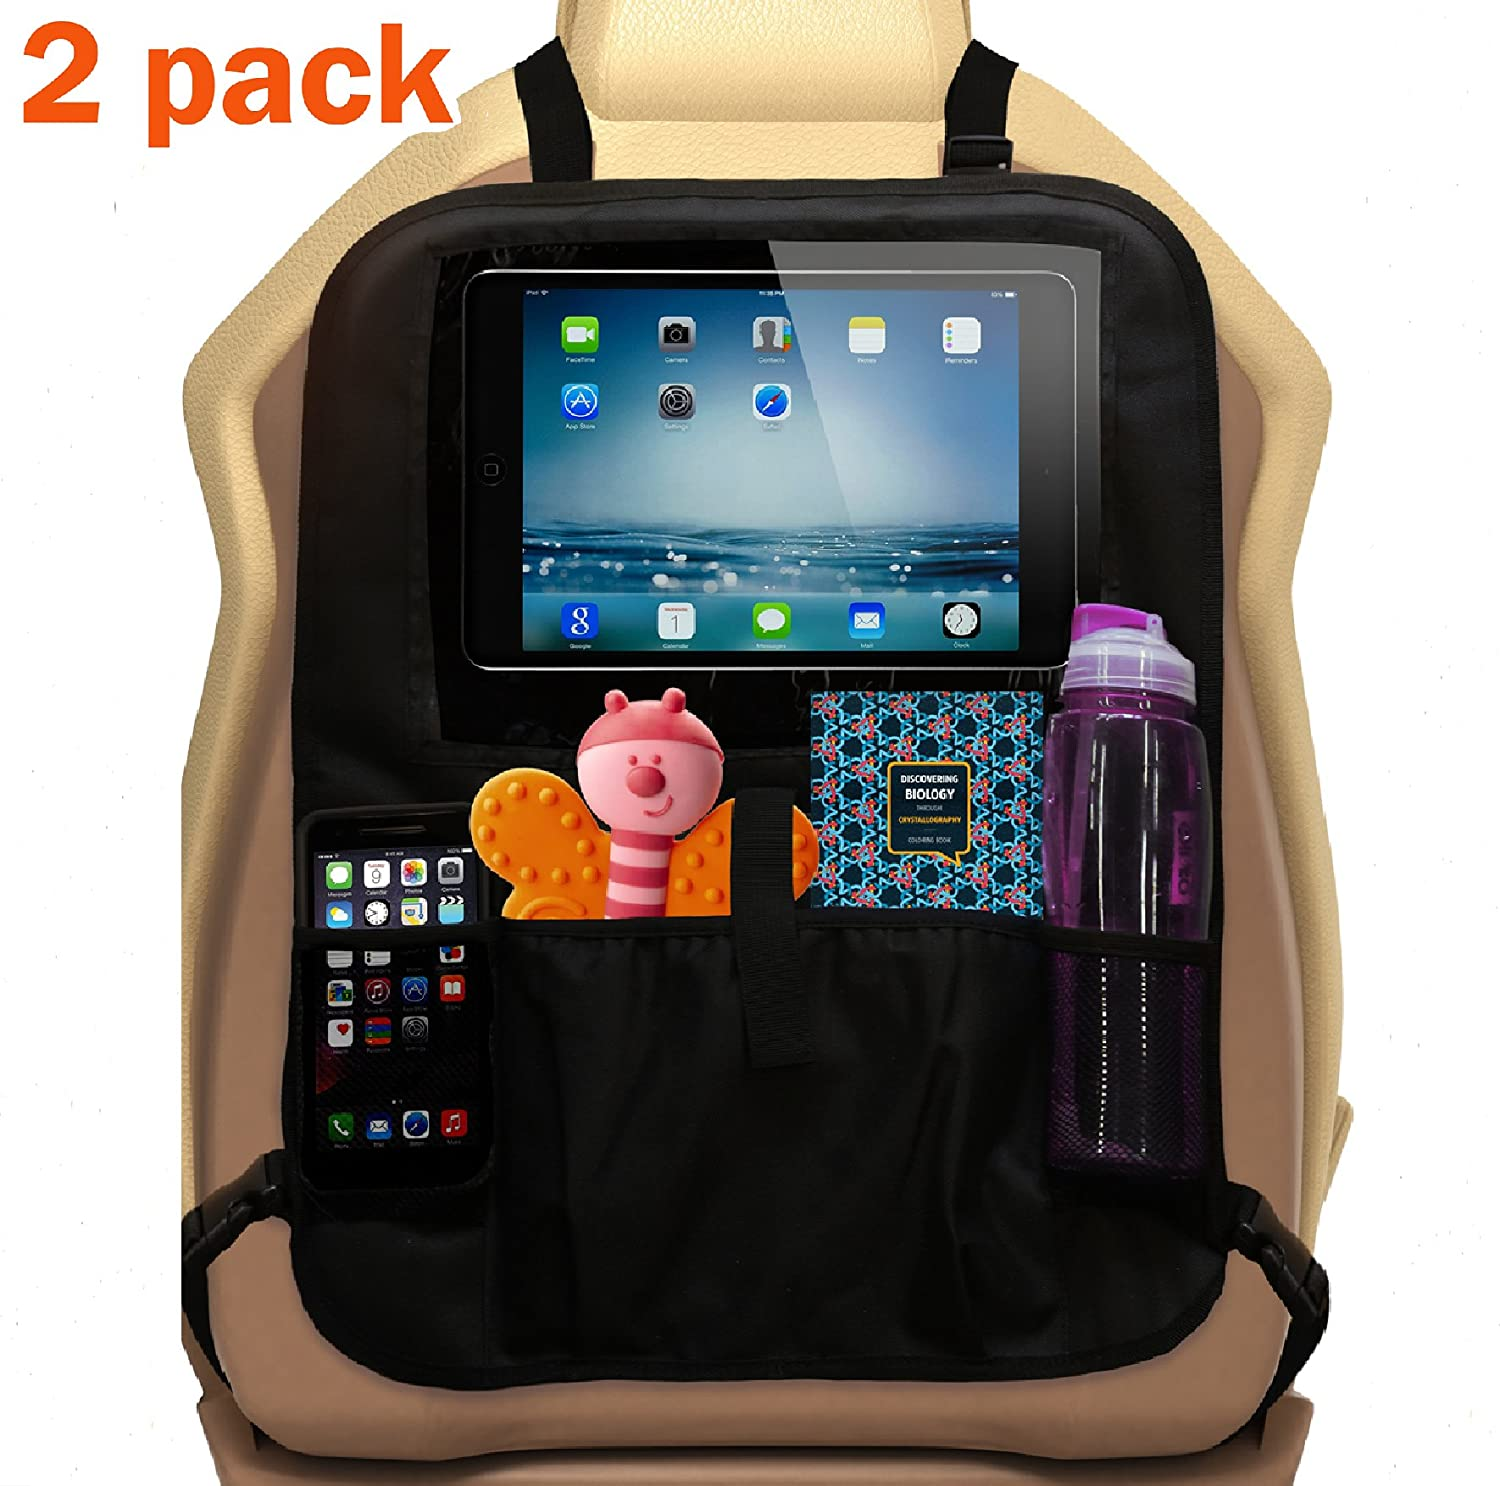 2 Backseat Toy Organizers by Ozziko. Black. XL Kids Kick Mat Protectors for Car Back Seats. 13'' Clear Tablet Holder & Storage Pockets for Bottles & Snacks. Great For Baby Boosters. Fits All Vehicles ipad holder for kids